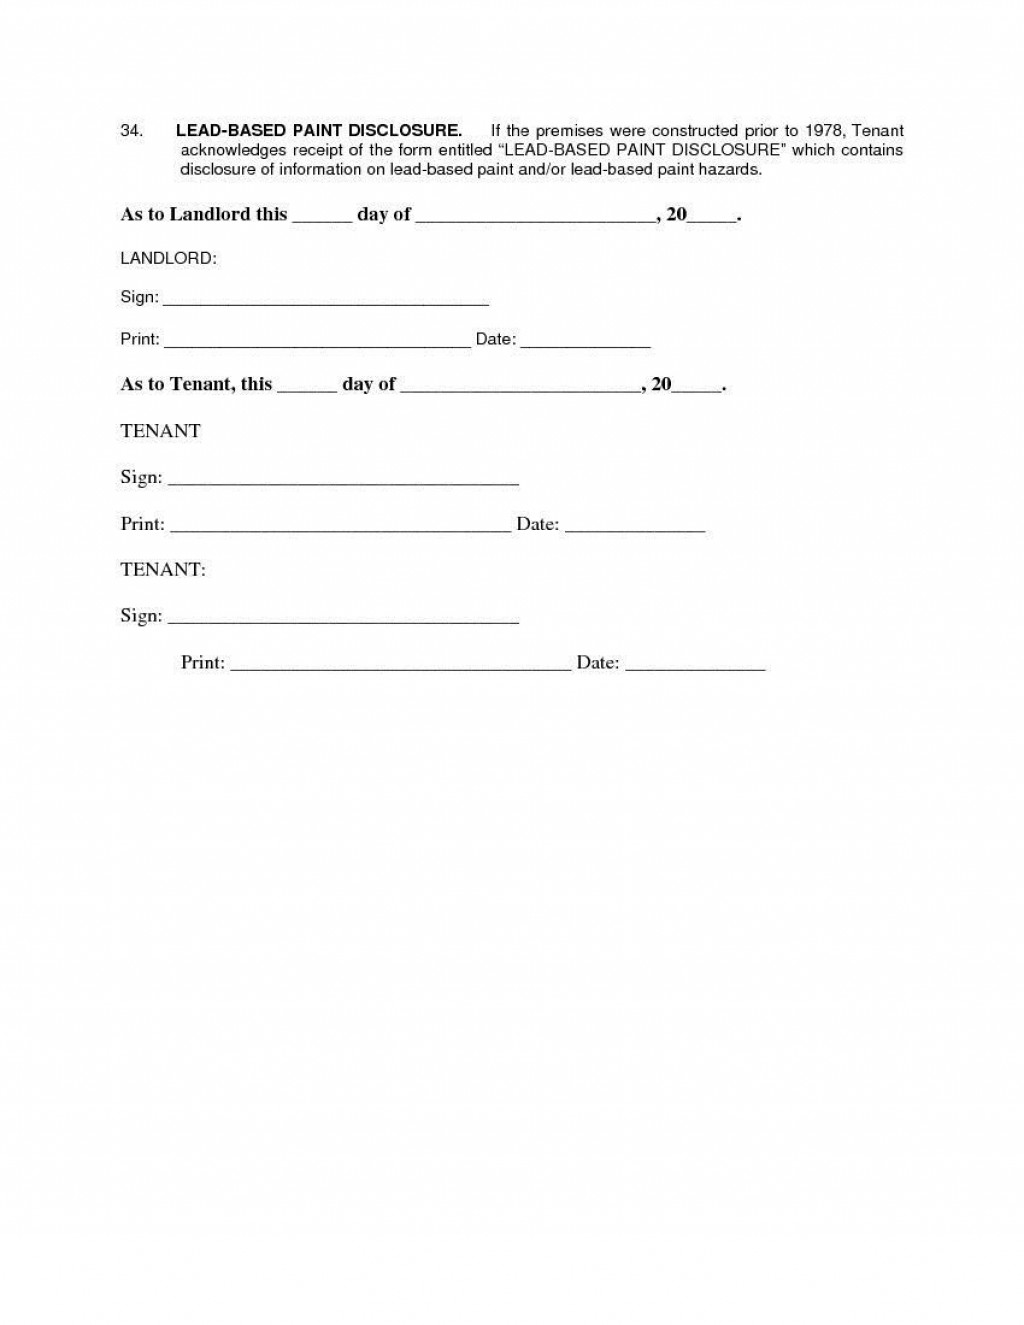 007 Remarkable Apartment Lease Agreement Form Texa High Def Large